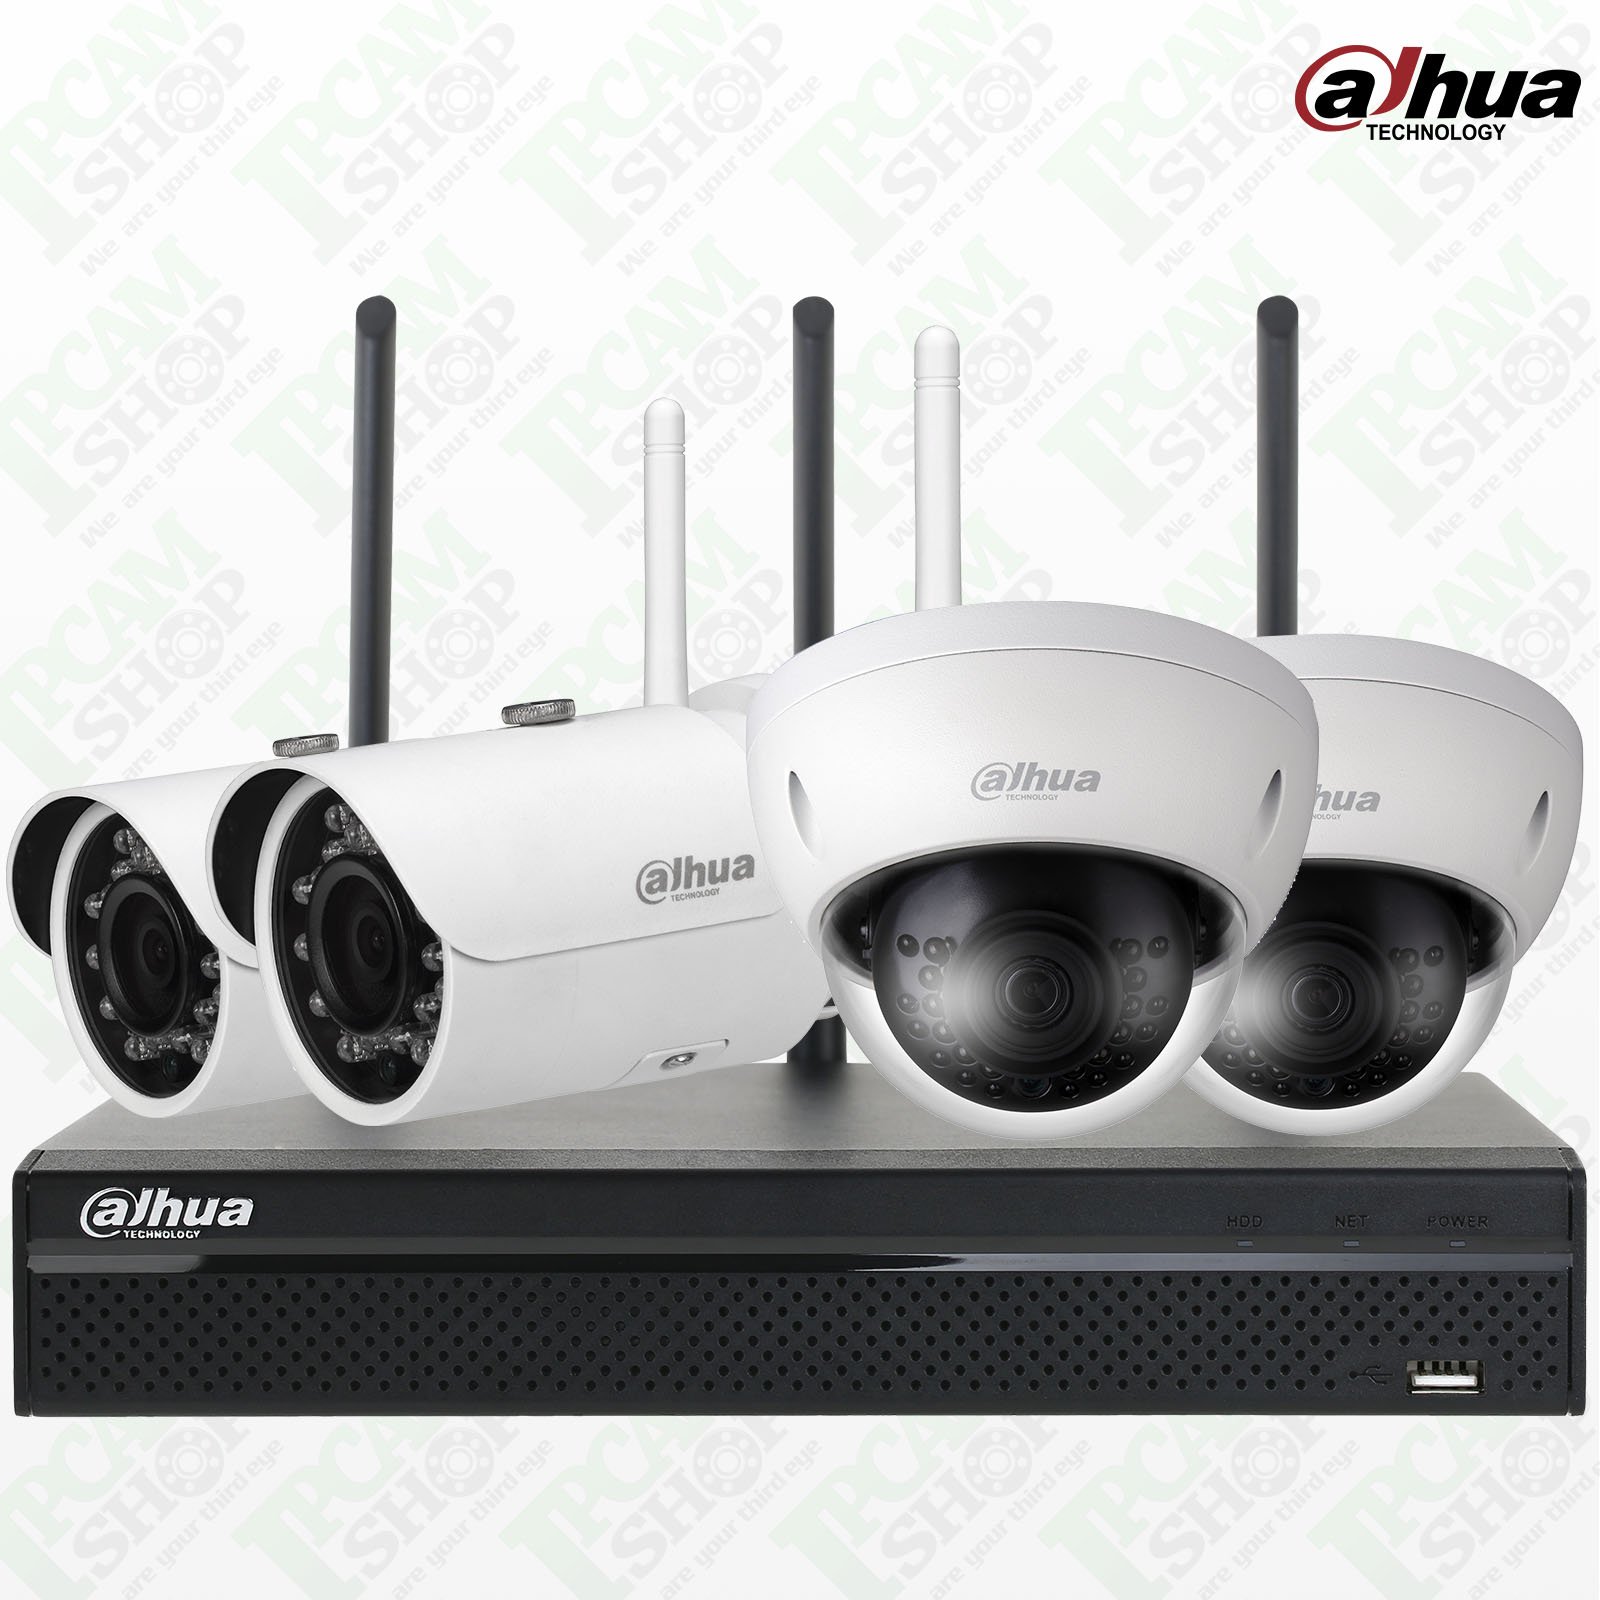 Dahua WiFi Kit NVR4104HS-W-S2, IPC-HDBW1320E-Wx2, IPC-HFW1320S-Wx2, Surveillance Hard Drives 1TB